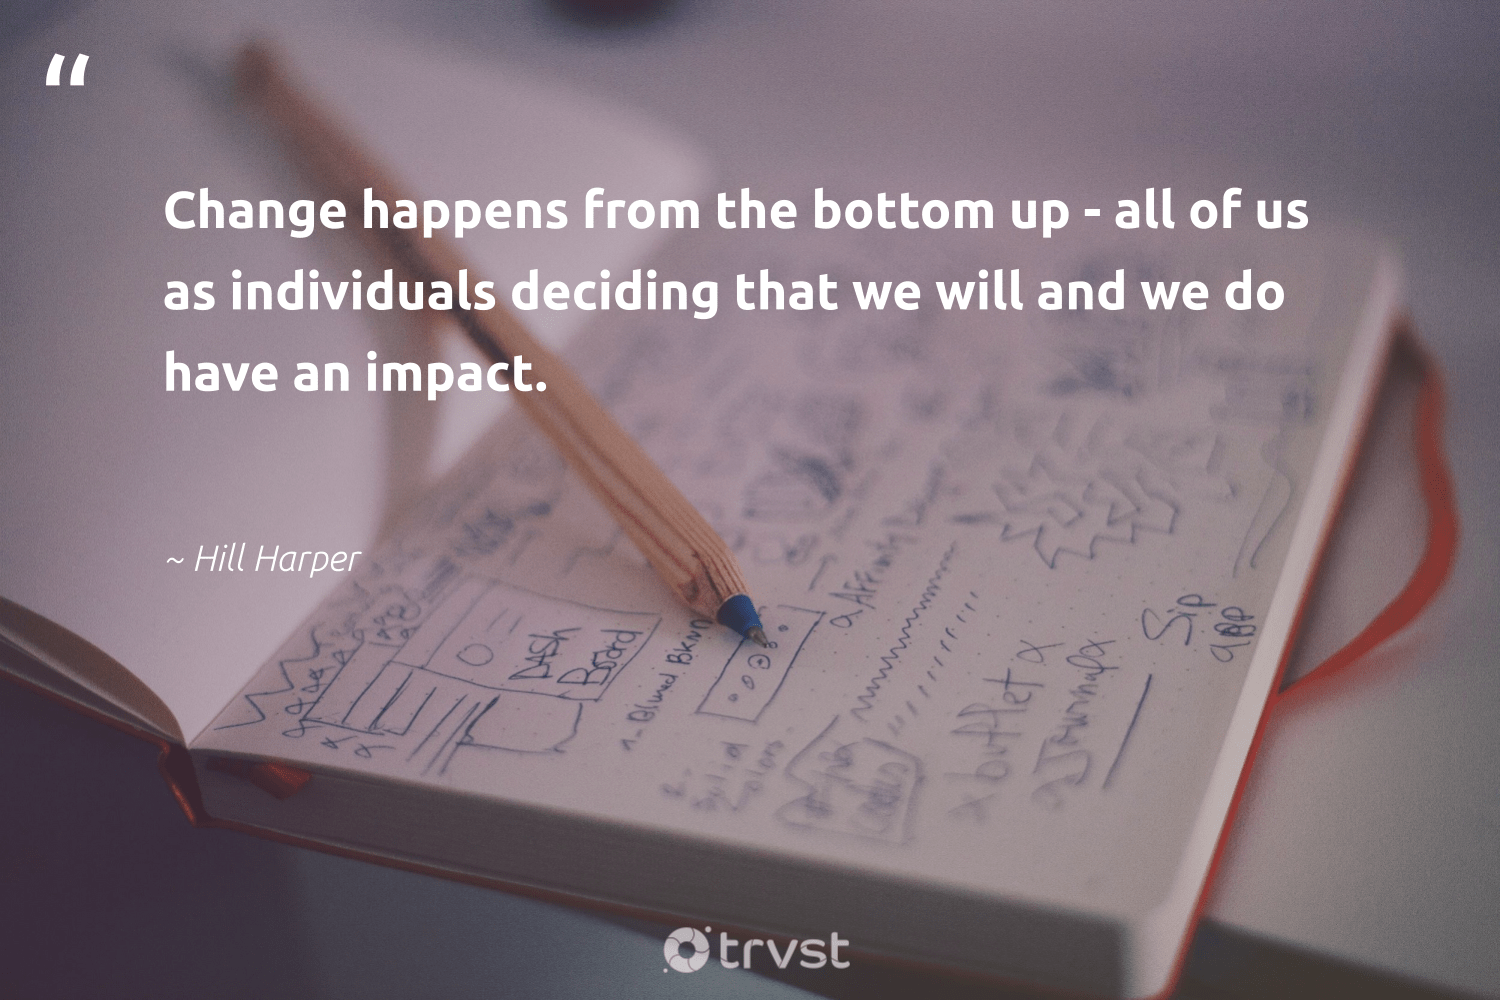 """""""Change happens from the bottom up - all of us as individuals deciding that we will and we do have an impact.""""  - Hill Harper #trvst #quotes #impact #dogood #gogreen #socialchange #bethechange #makeadifference #dosomething #giveback #dotherightthing #ethicalbusiness"""